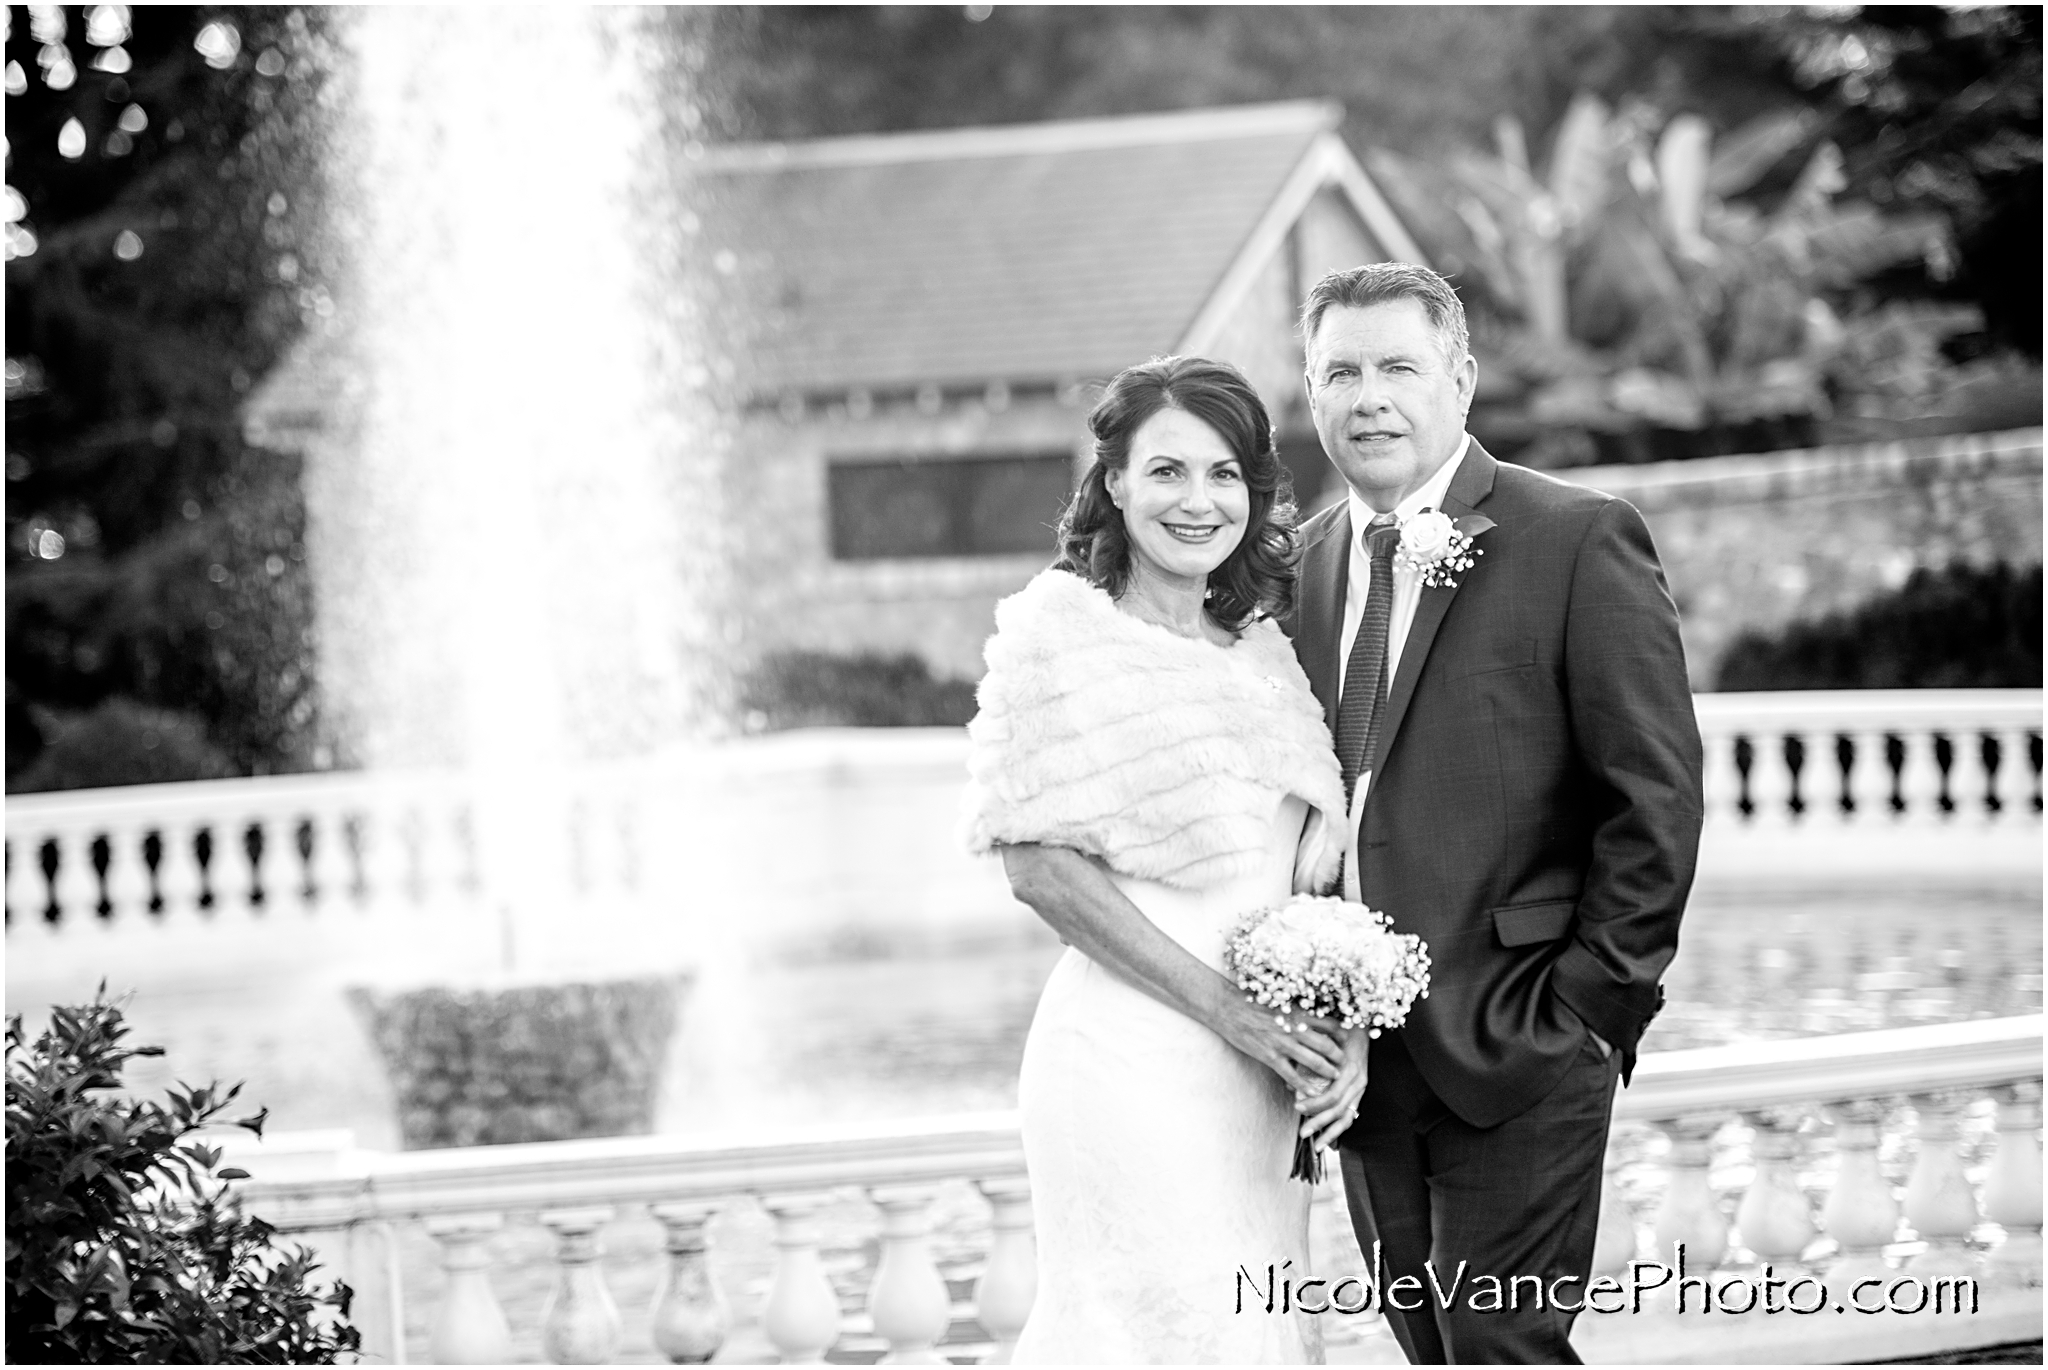 The bride and groom pose by the fountain at Maymont Park in Richmond, VA.